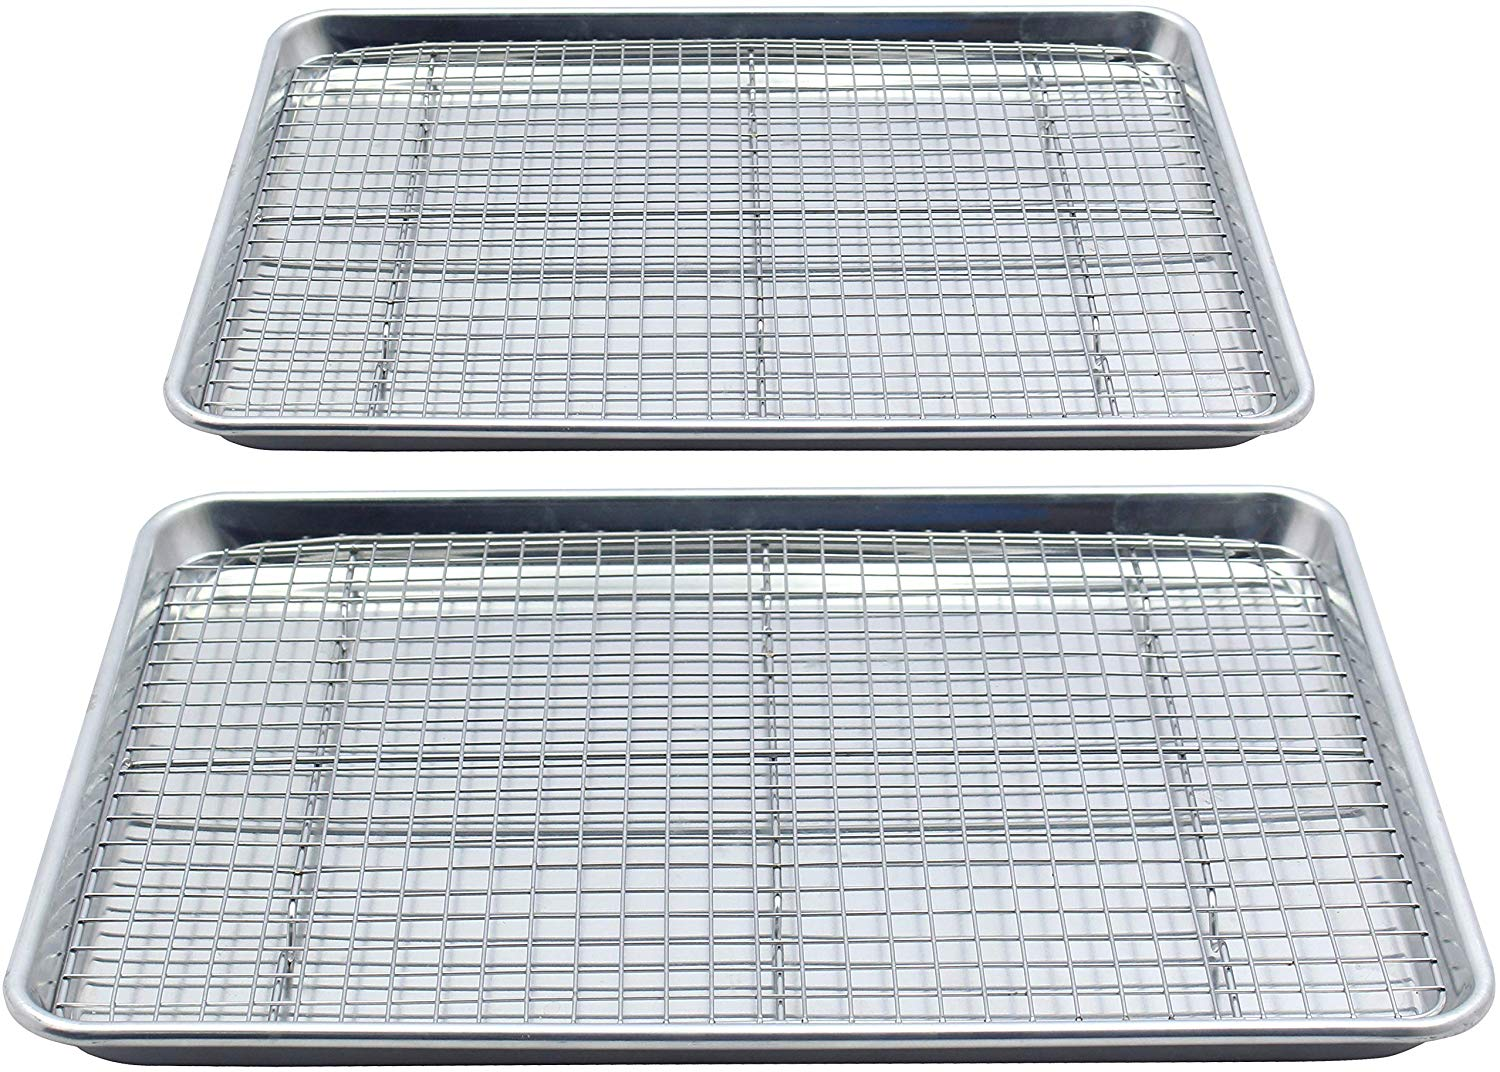 Checkered Chef Stainless Steel Baking Sheets With Racks